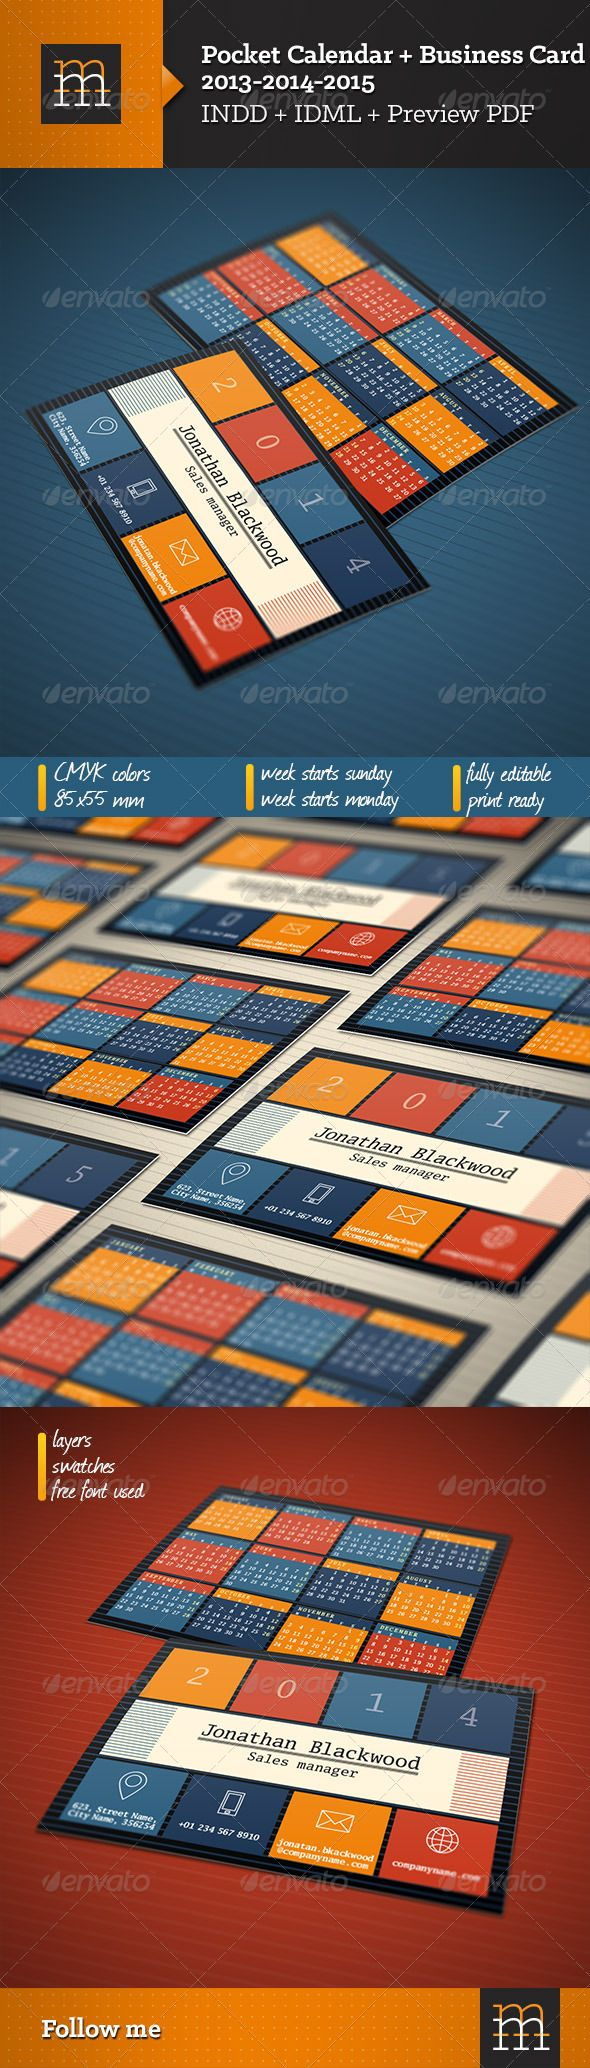 Business Card + Pocket Calendar 2013-2014-2015 #GraphicRiver Pocket Calendar + Business Card Features 2013-2014-2015 Calendar Week starts monday Week starts sunday 85×55 mm (0,25 inch bleeds) CMYK colors Print ready Fully editable Free font used: Luxi Mono File formats INDD CS4 IDML PDF Preview More items by mikhailmorosin Created: 13August13 GraphicsFilesIncluded: InDesignINDD Layered: Yes MinimumAdobeCSVersion: CS4 PrintDimensions: 3.34x2.16 Tags: black #...